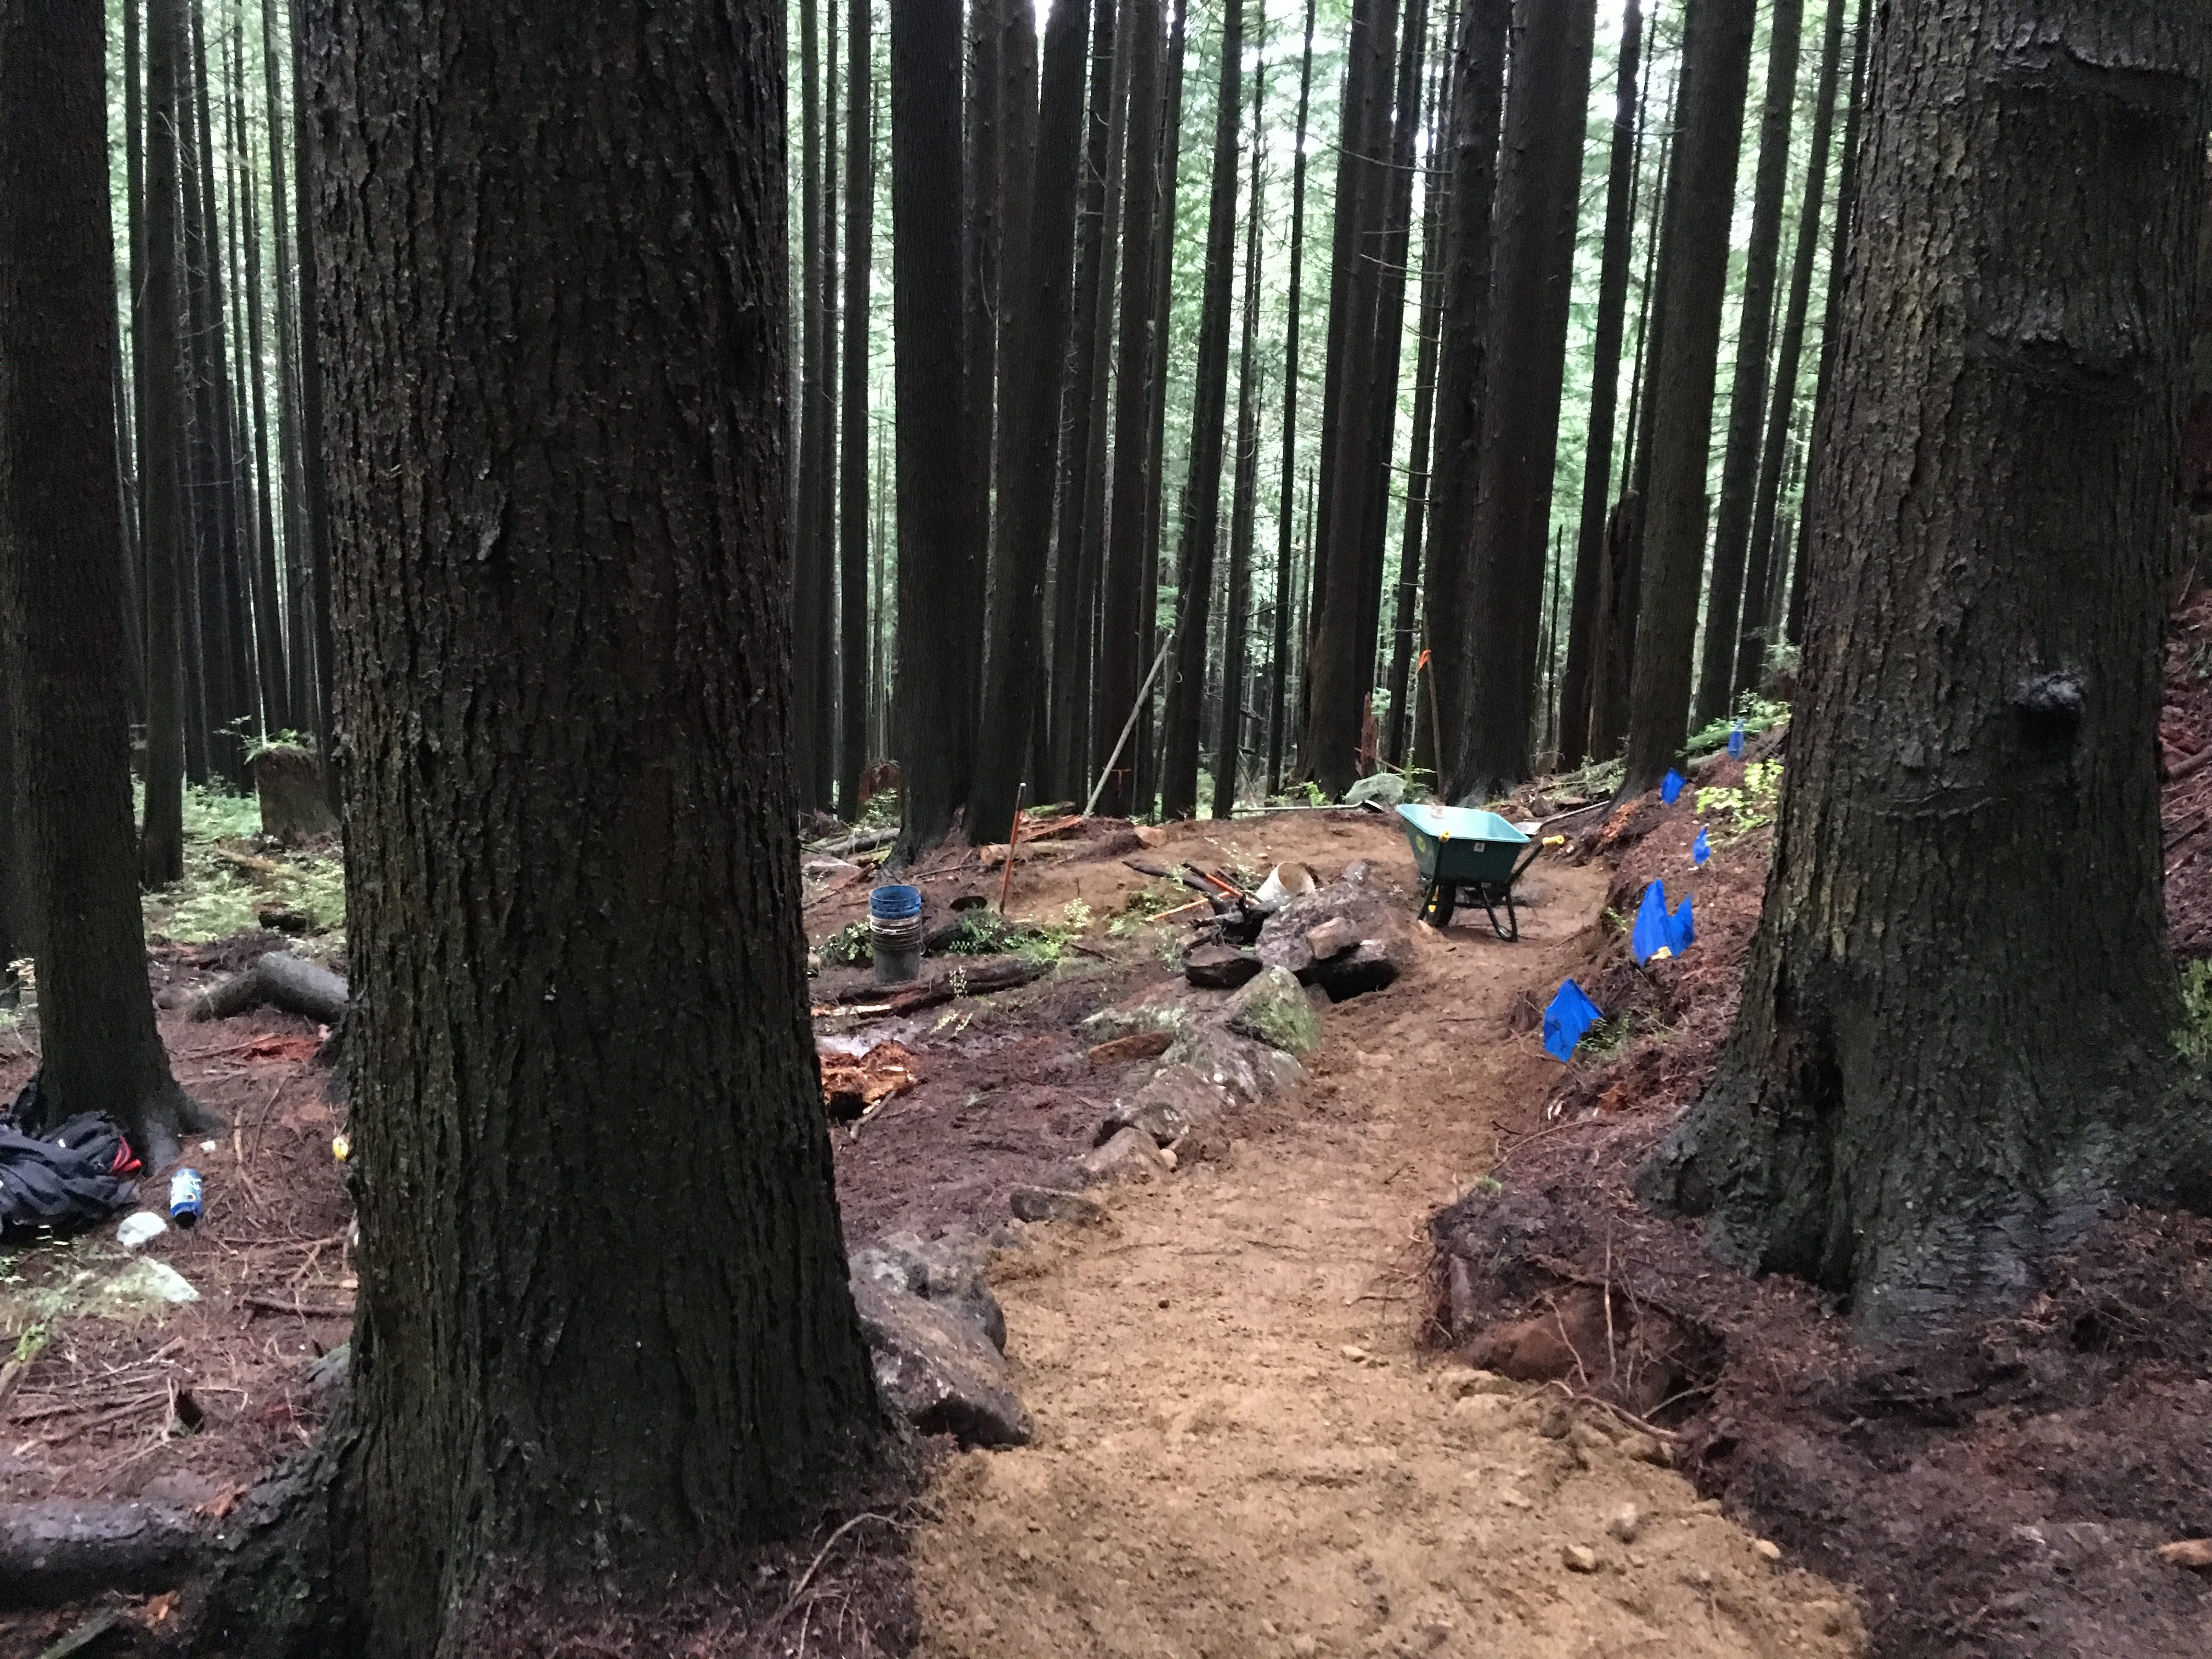 The new trail twisting through the trees